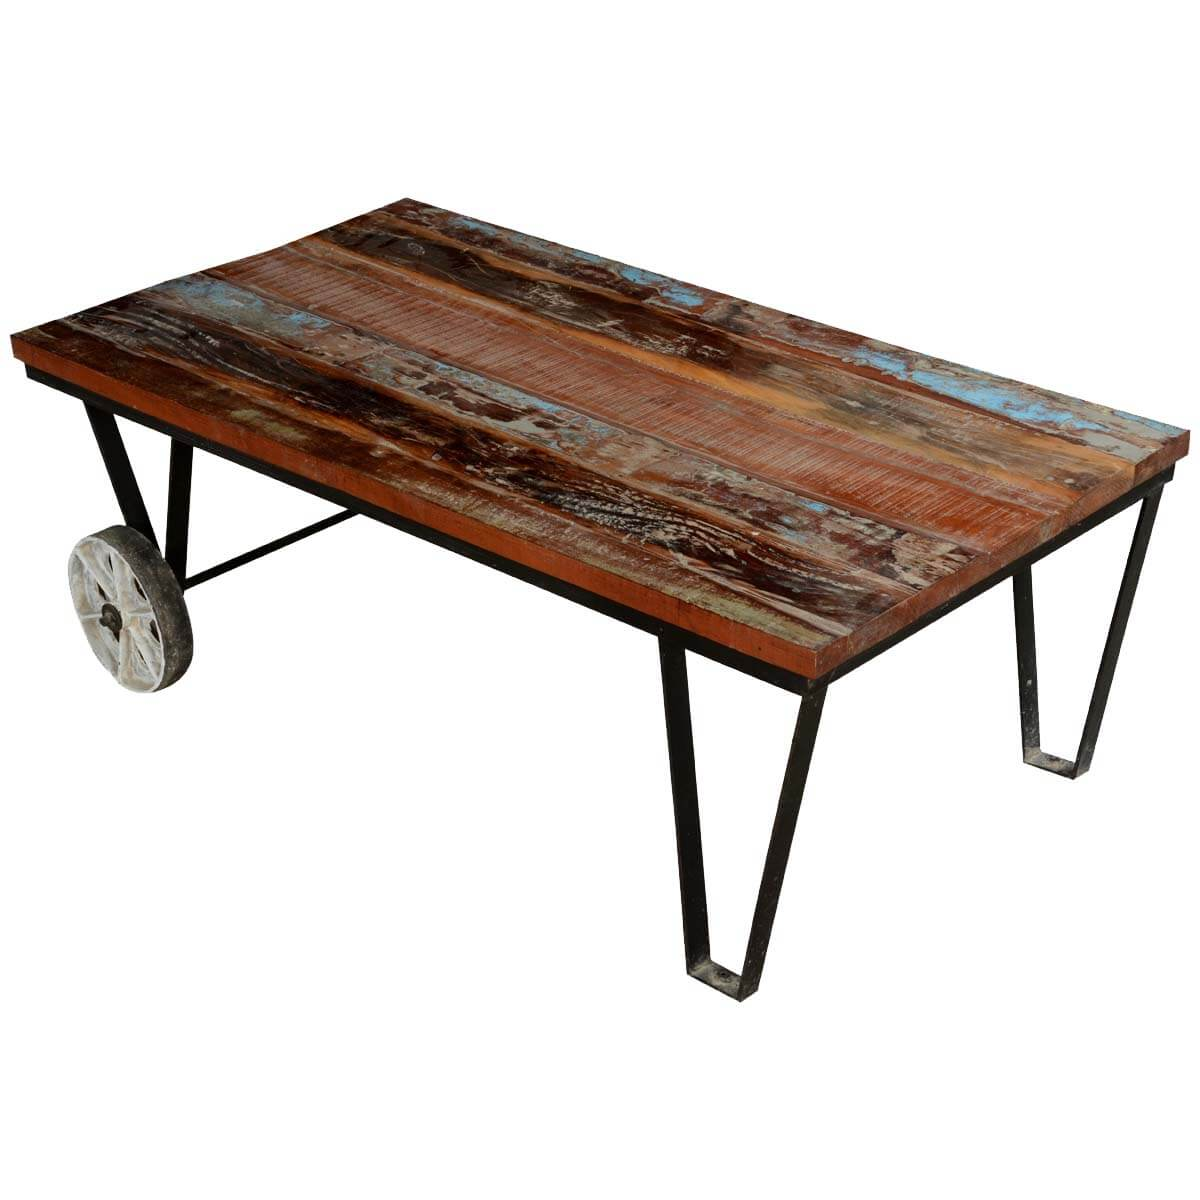 Industrial Coffee Table Images: Reclaimed Wood Industrial Style Factory Cart Coffee Table